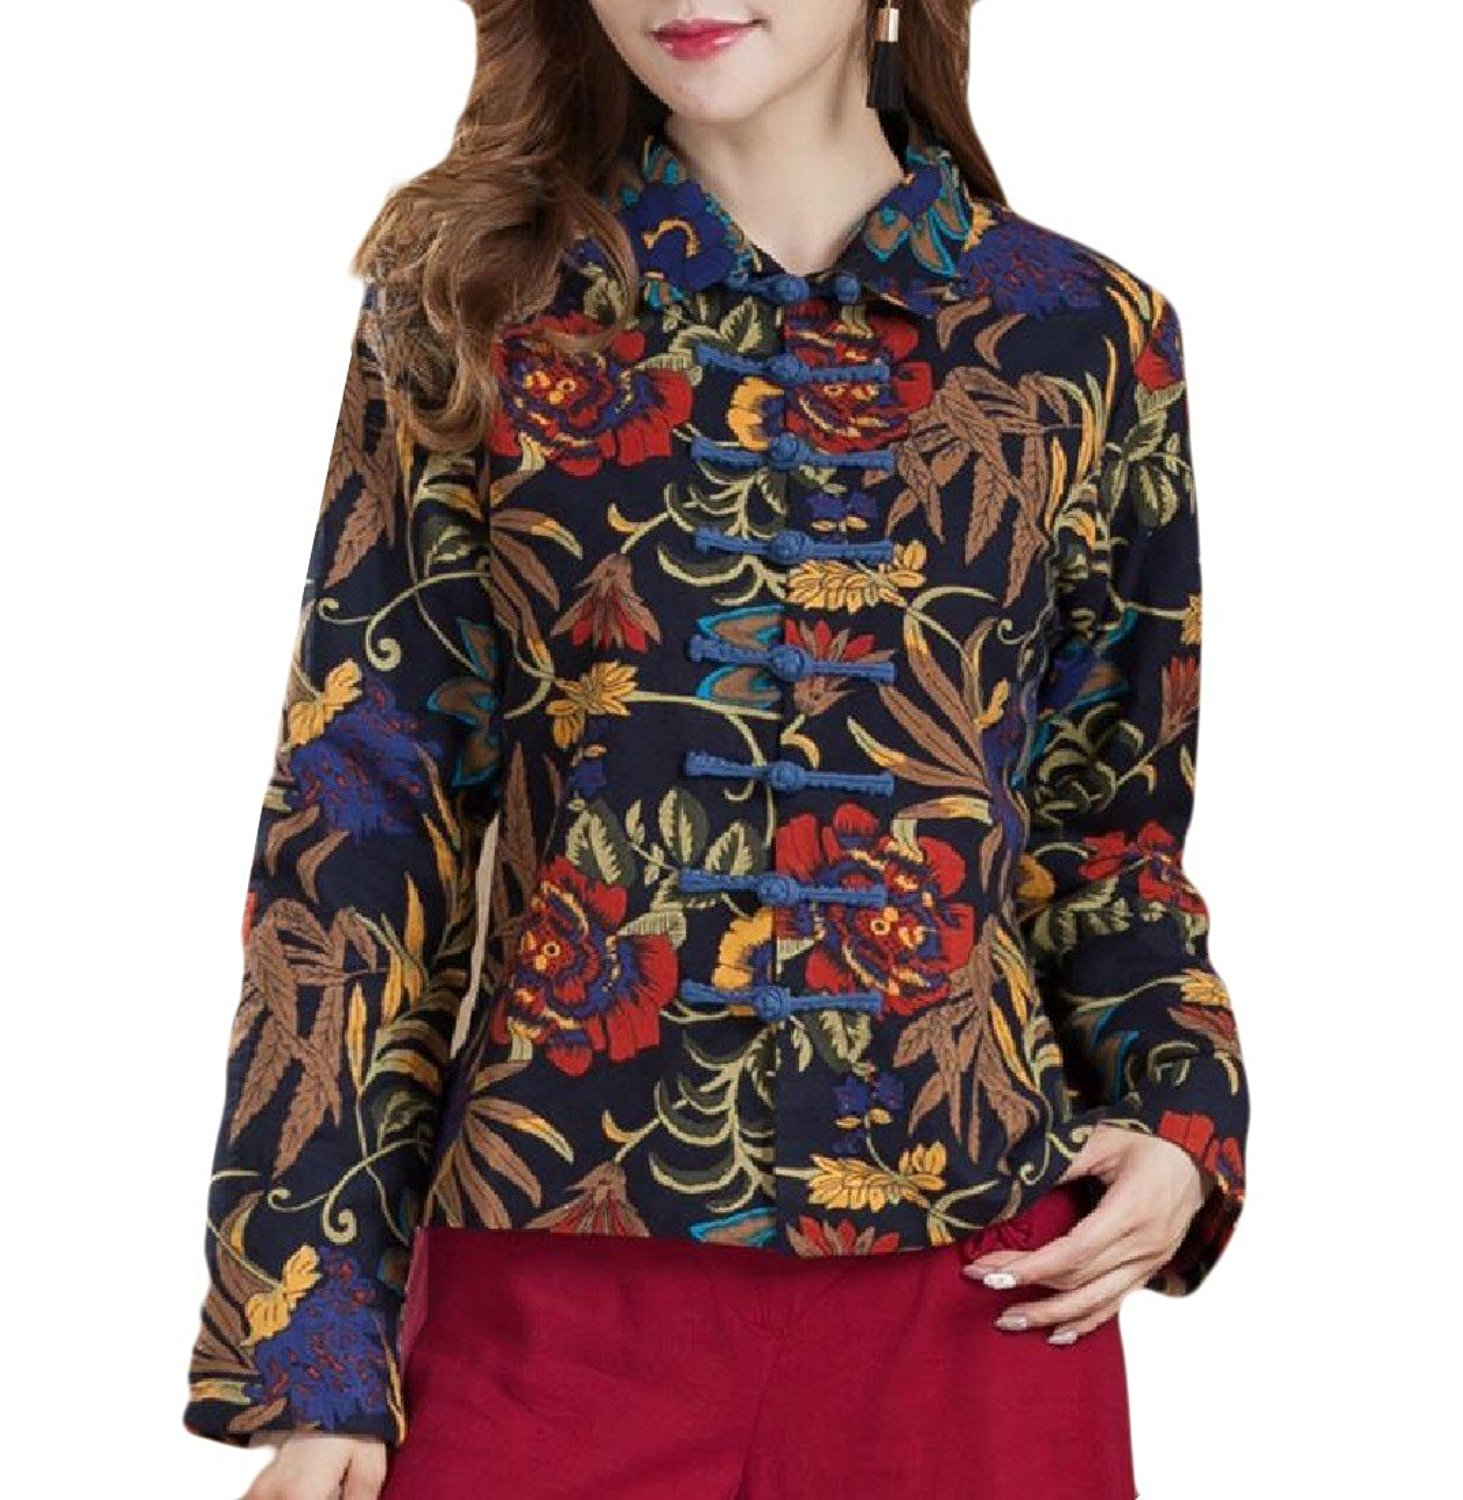 Sheng Xi Women's Chinese Style Floral Print Stand Collar Anorak Jacket